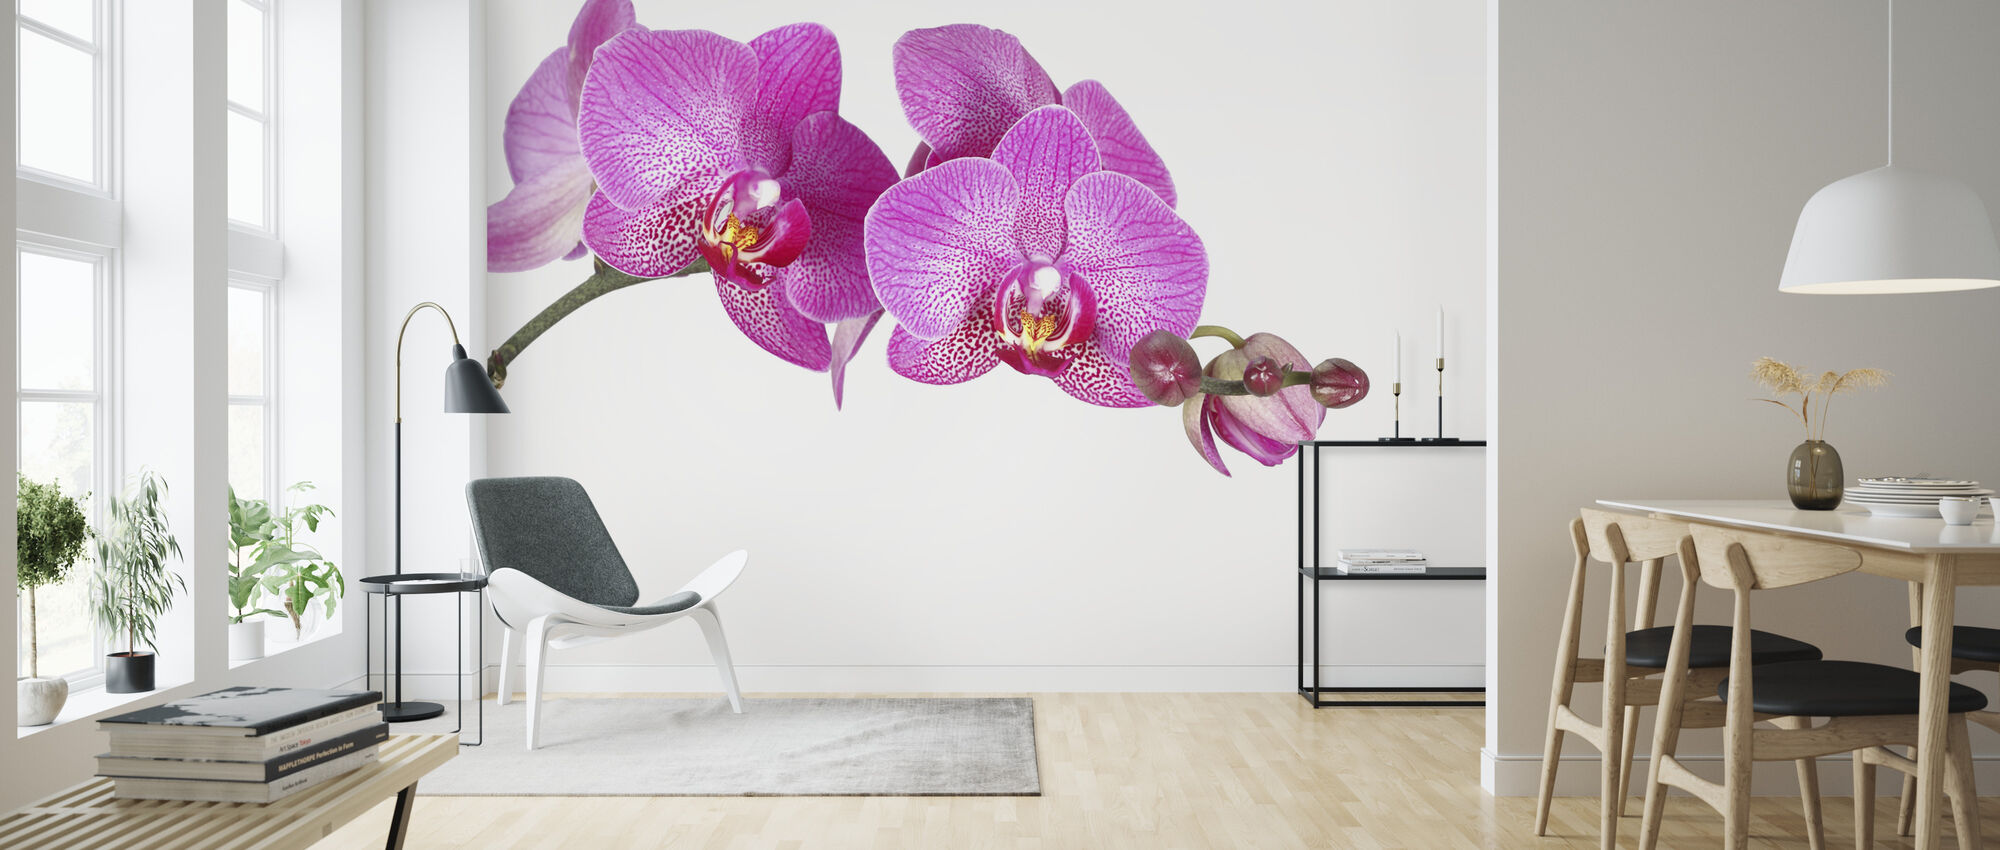 Innocent Orchid - Wallpaper - Living Room